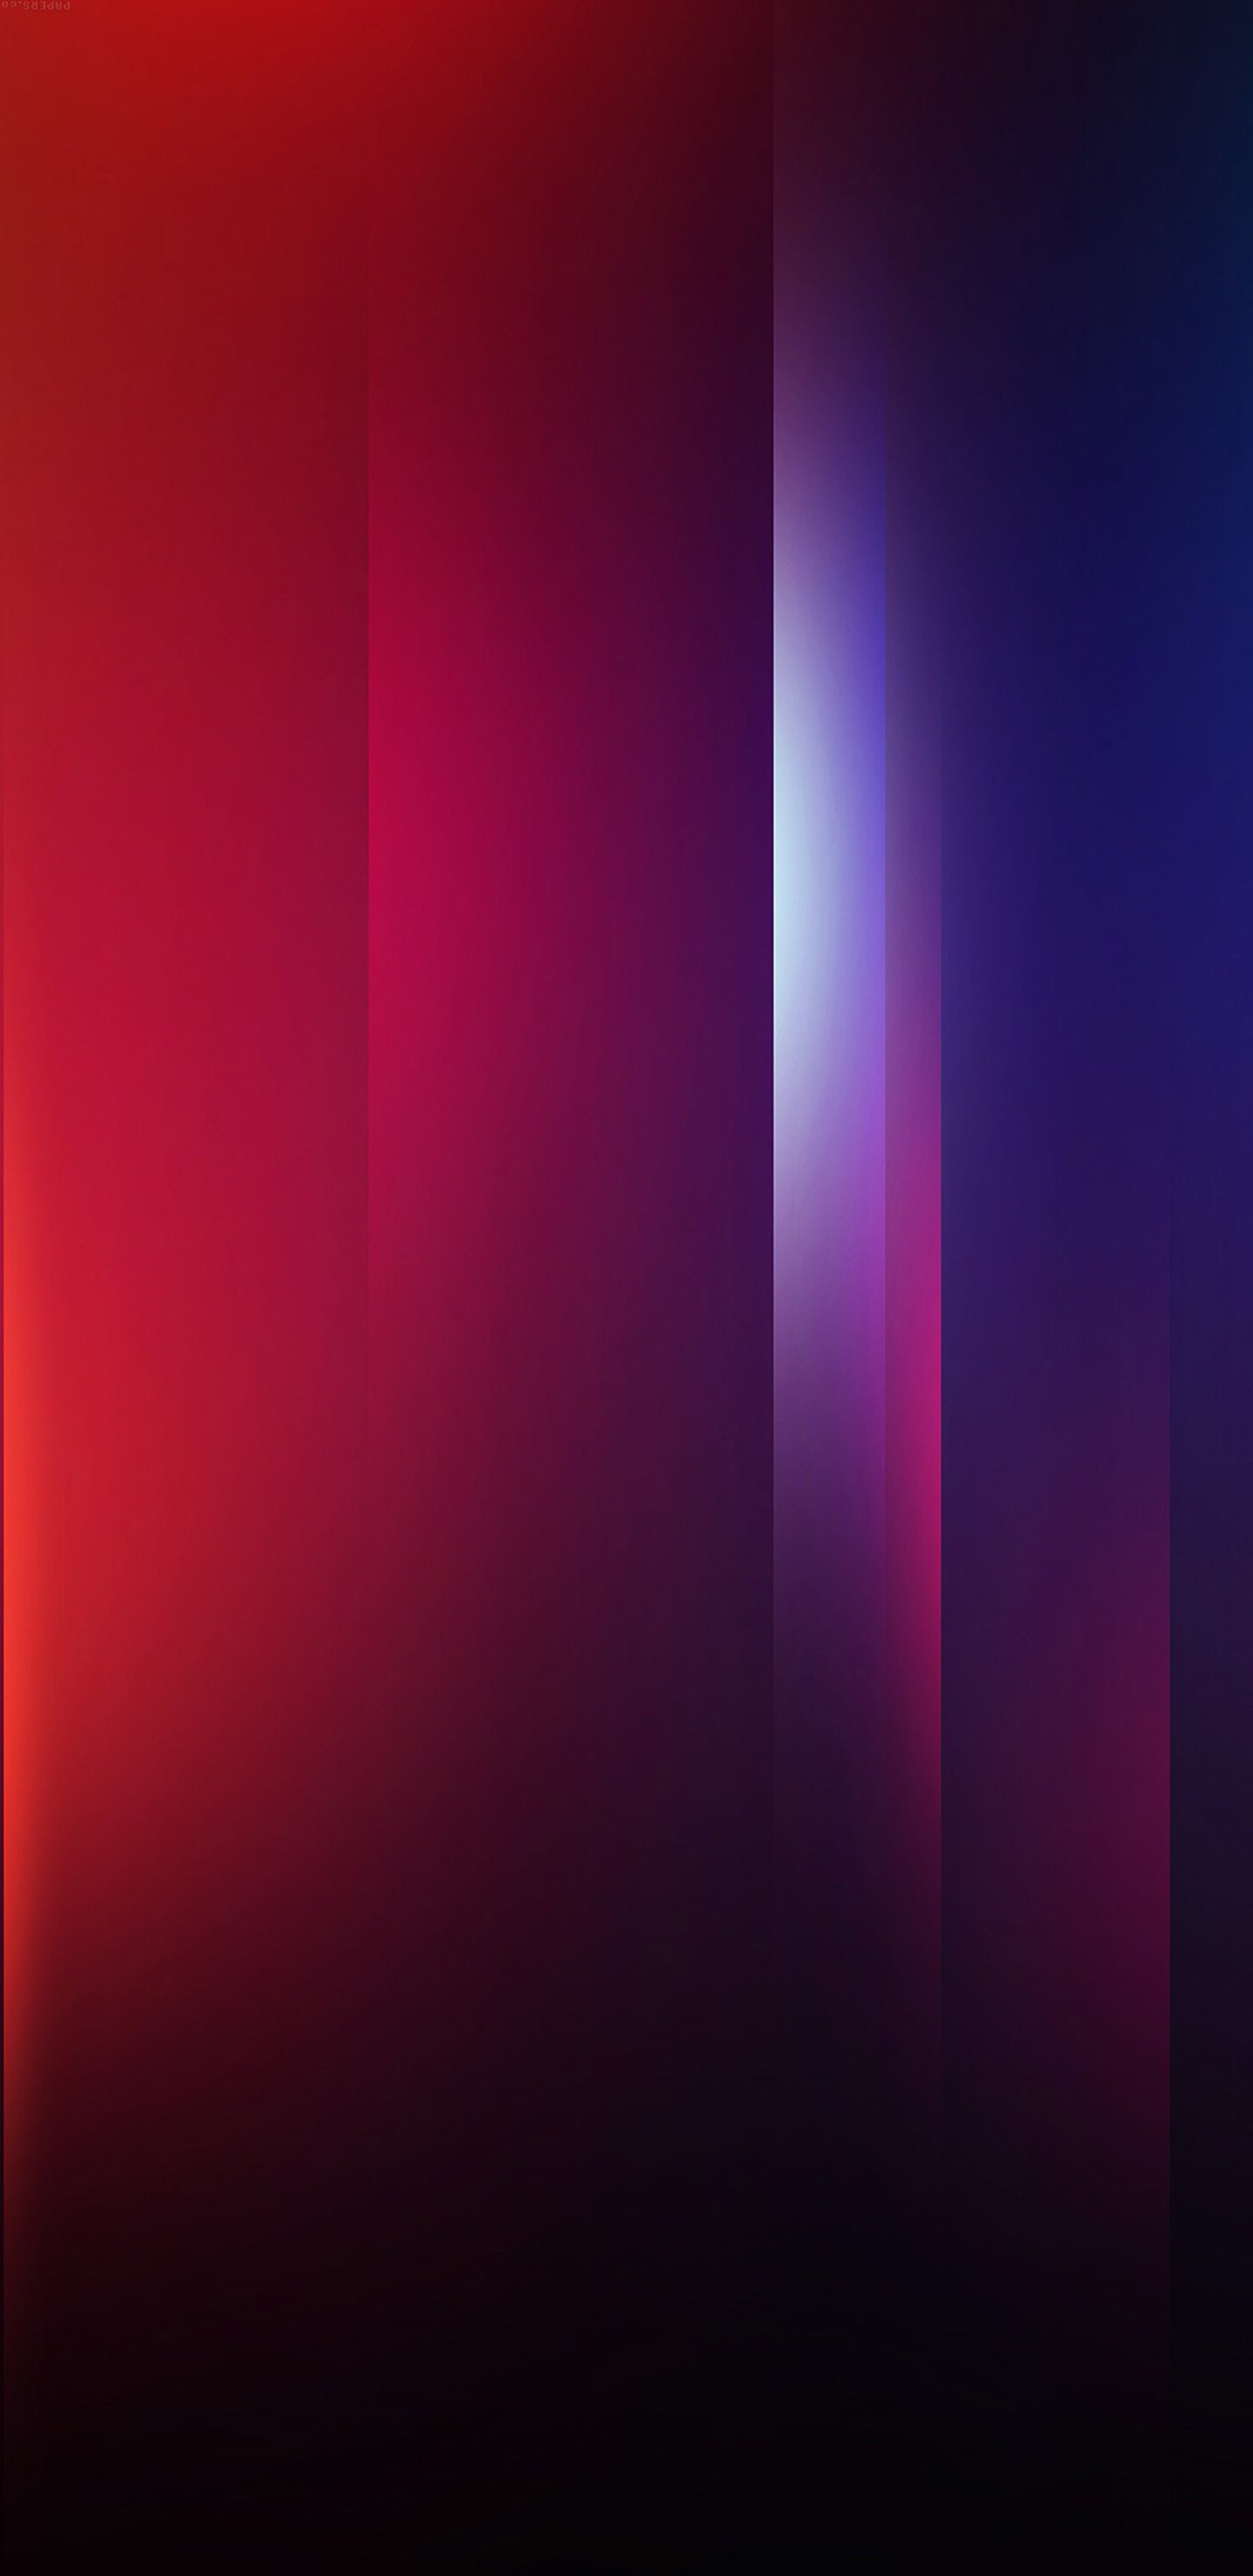 Blue, red, purple, minimal, abstract, wallpaper, galaxy, clean,